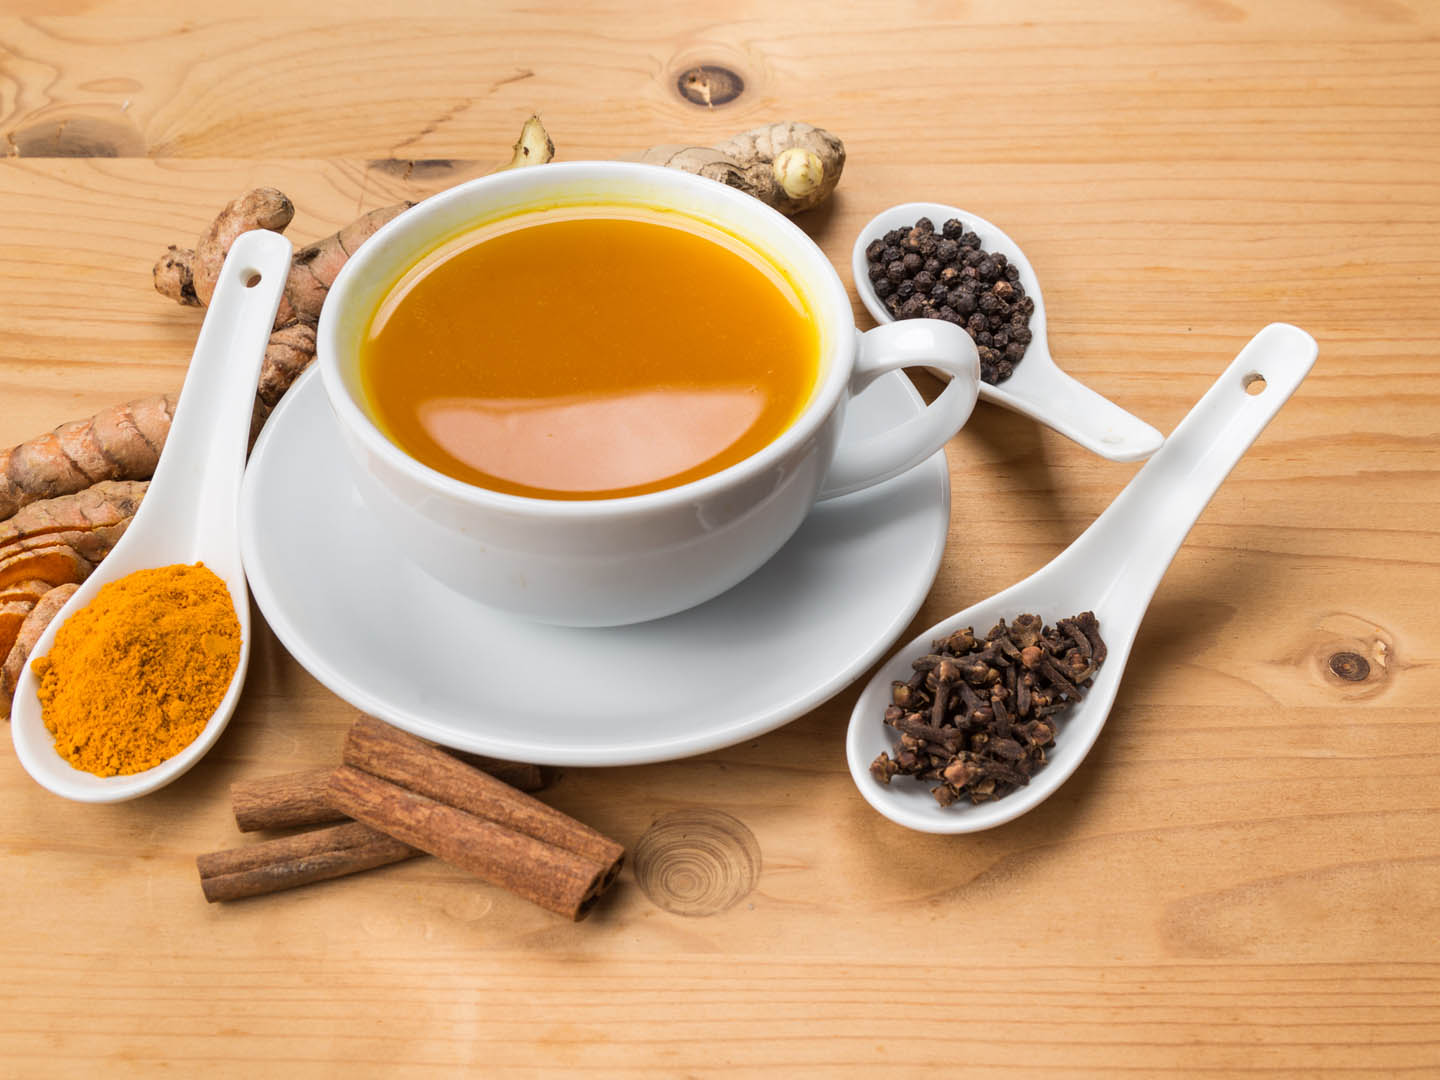 Turmeric Tea Health Benefits - Turmeric Tea Recipe | Dr. Weil